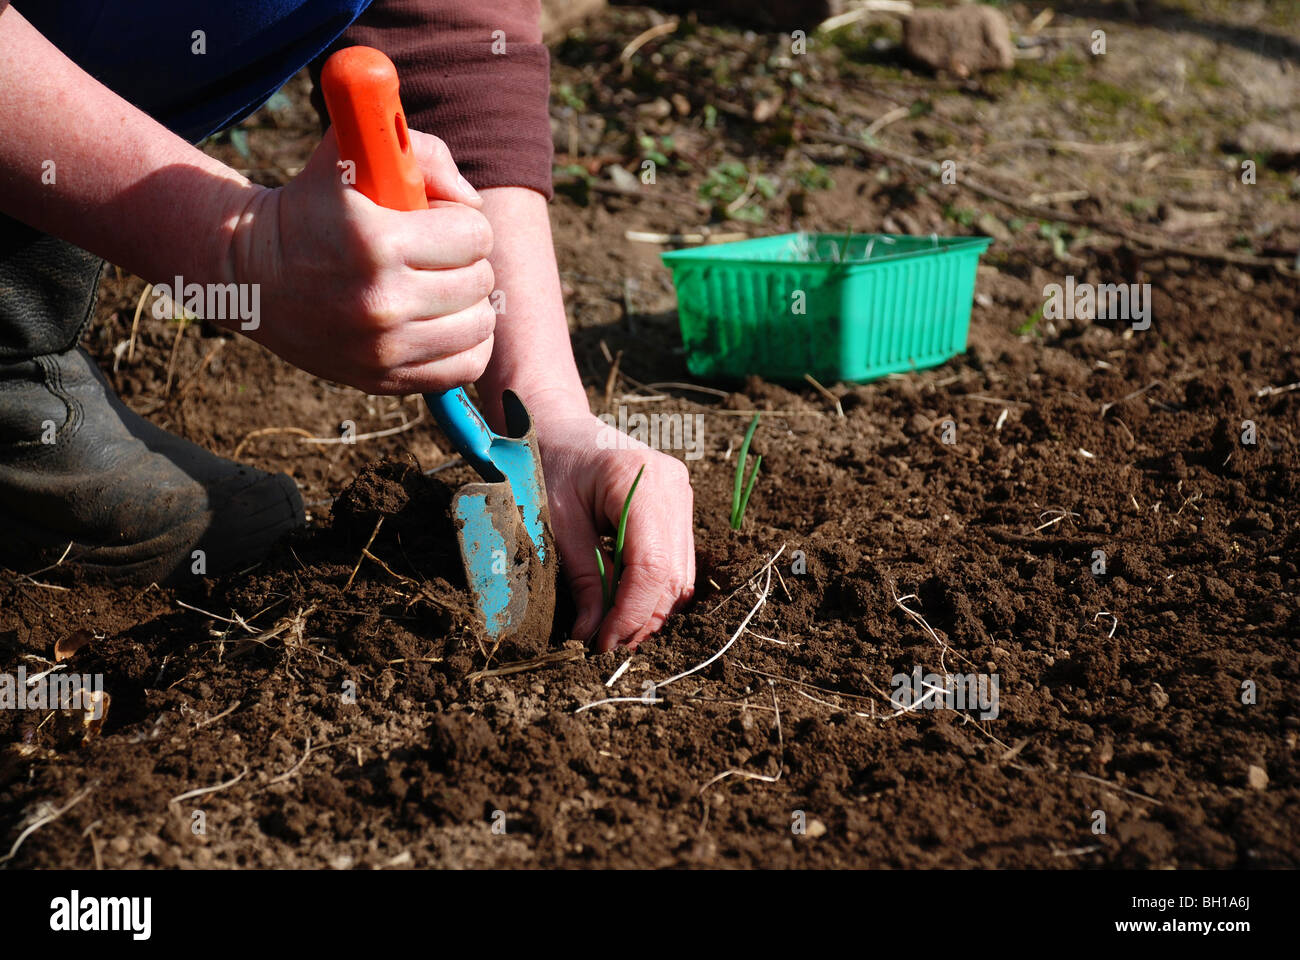 Planting onions with a shovel - Stock Image